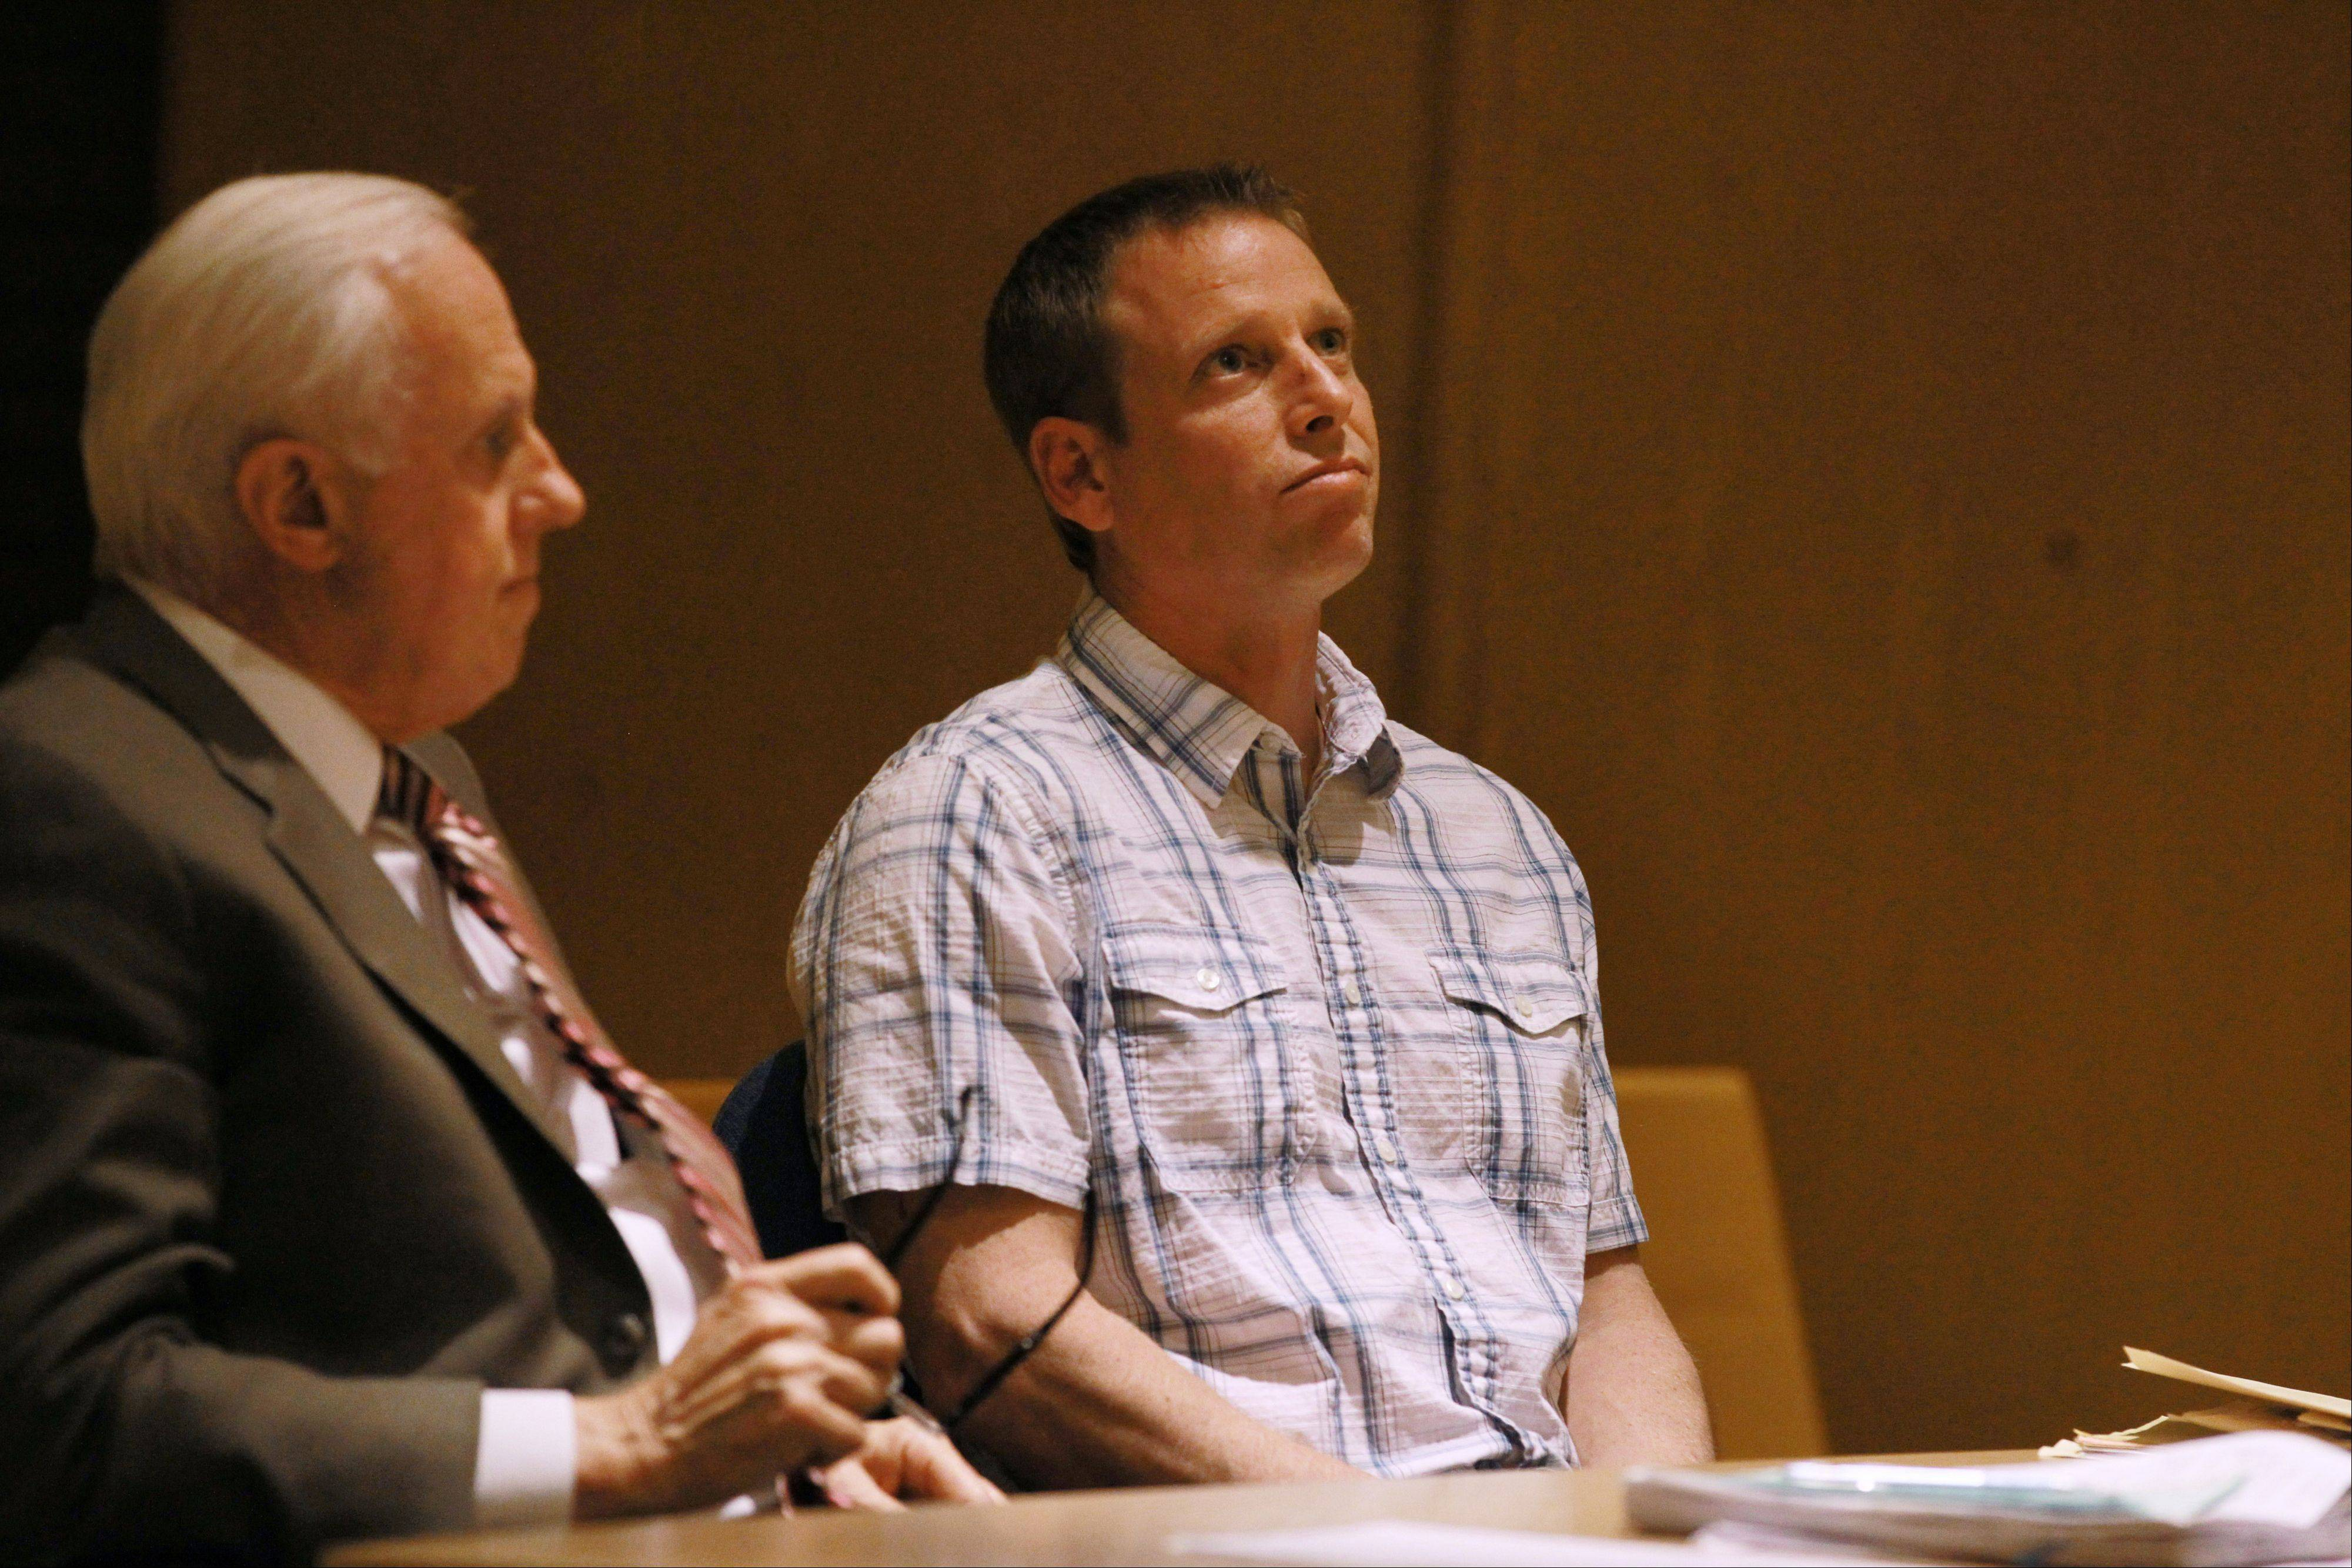 Timothy Morrow, 43, of Round Lake Beach, right, and his defense attorney Mike Norris listen to Lake County Judge Brian P. Hughes issue his sentence Wednesday at the Lake County courthouse in Waukegan. Hughes sentenced Morrow to 13 years in prison for his eighth DUI conviction.